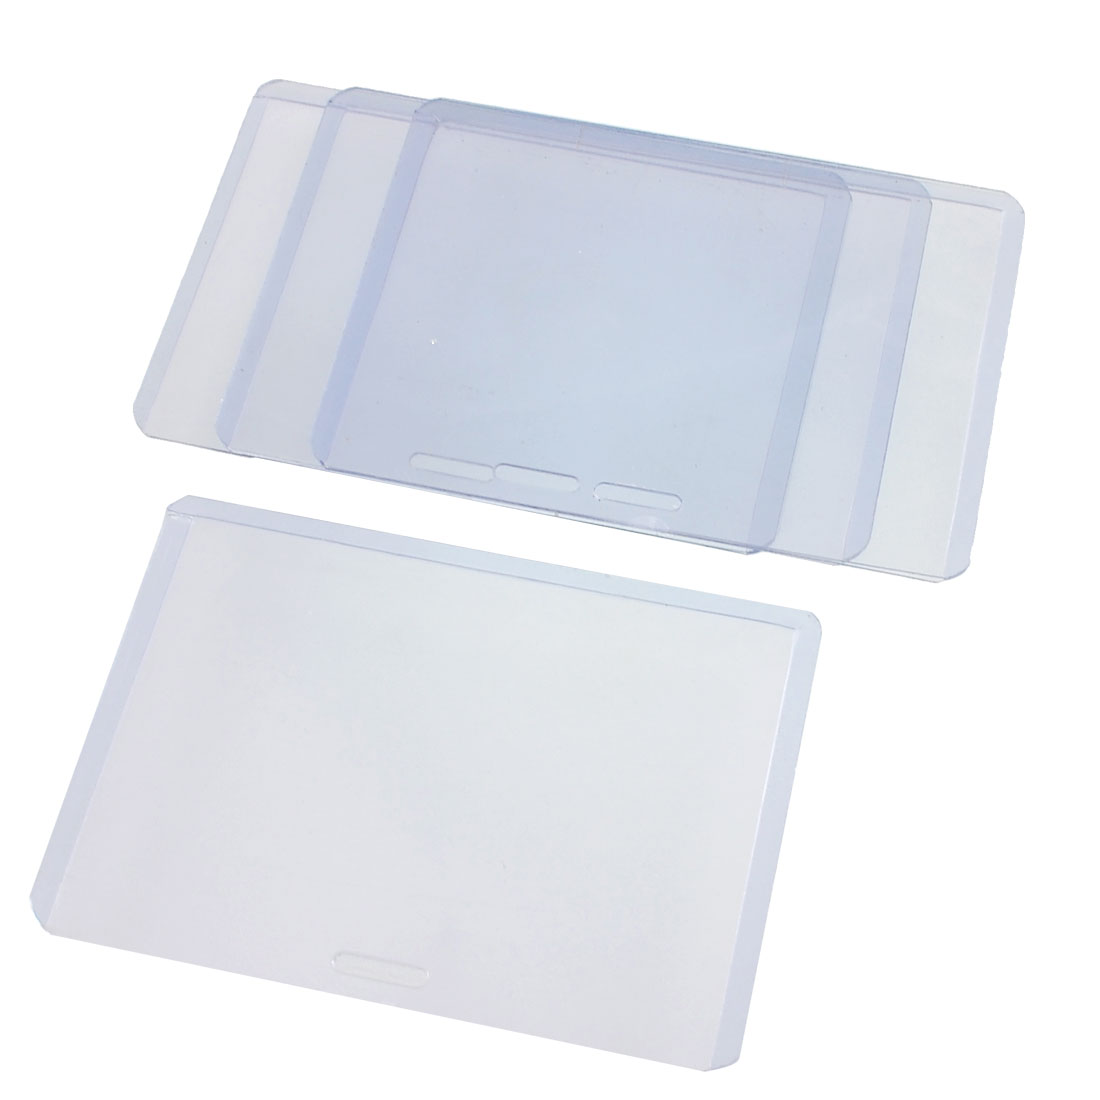 Plastic Horizontal Exhibition Office ID Card Holders Transparent 4 Pcs